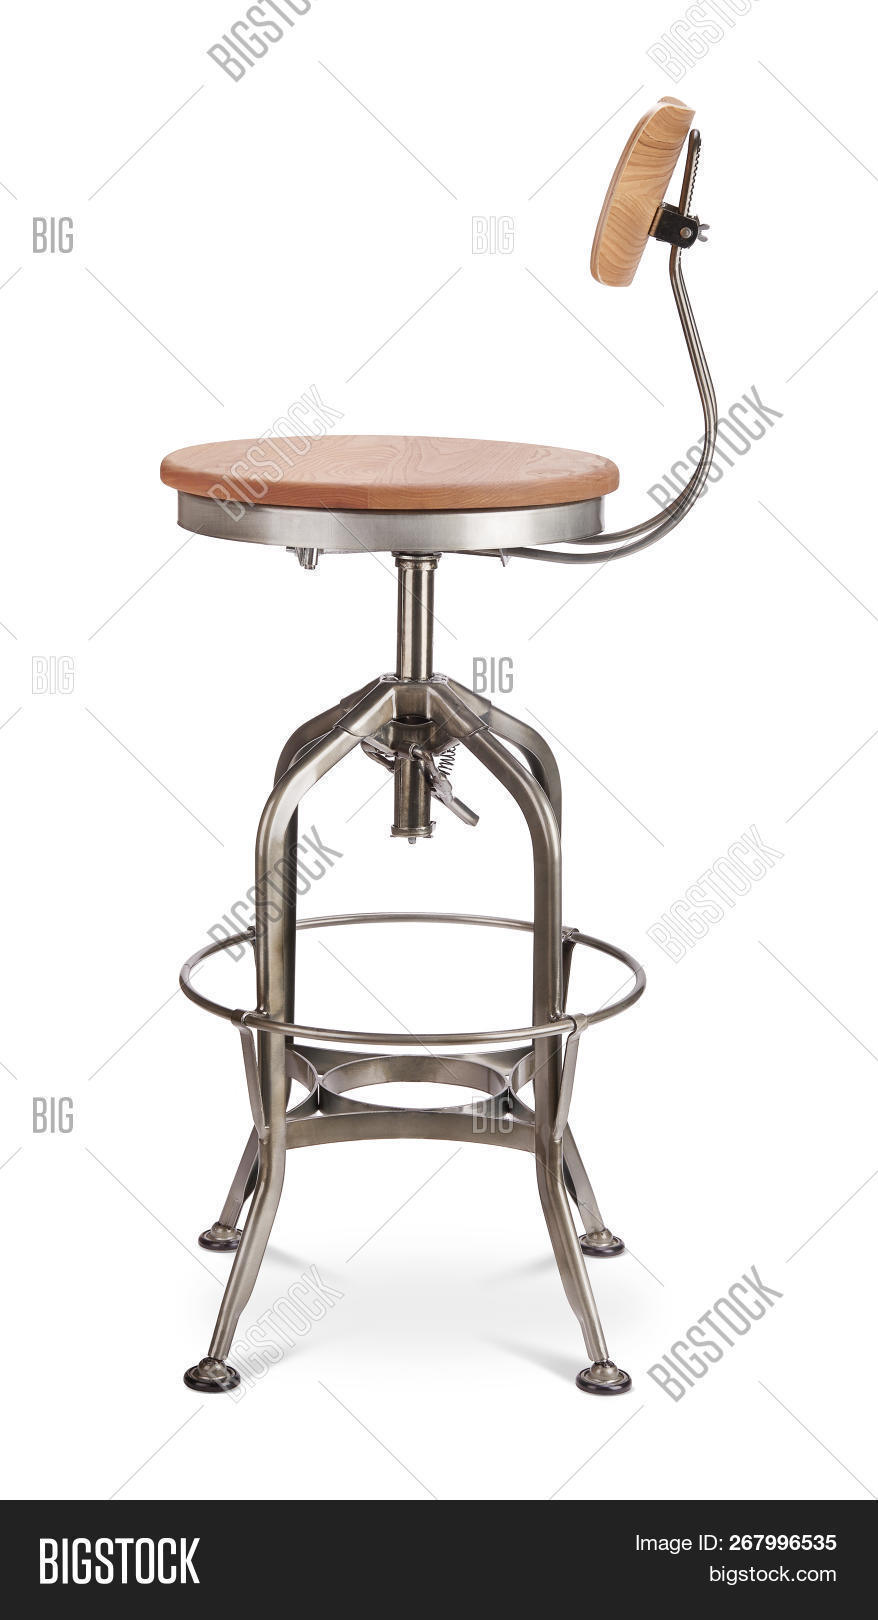 Superb Silver Shade Excessive Spinning Bar Stool Chair Wooden Inzonedesignstudio Interior Chair Design Inzonedesignstudiocom